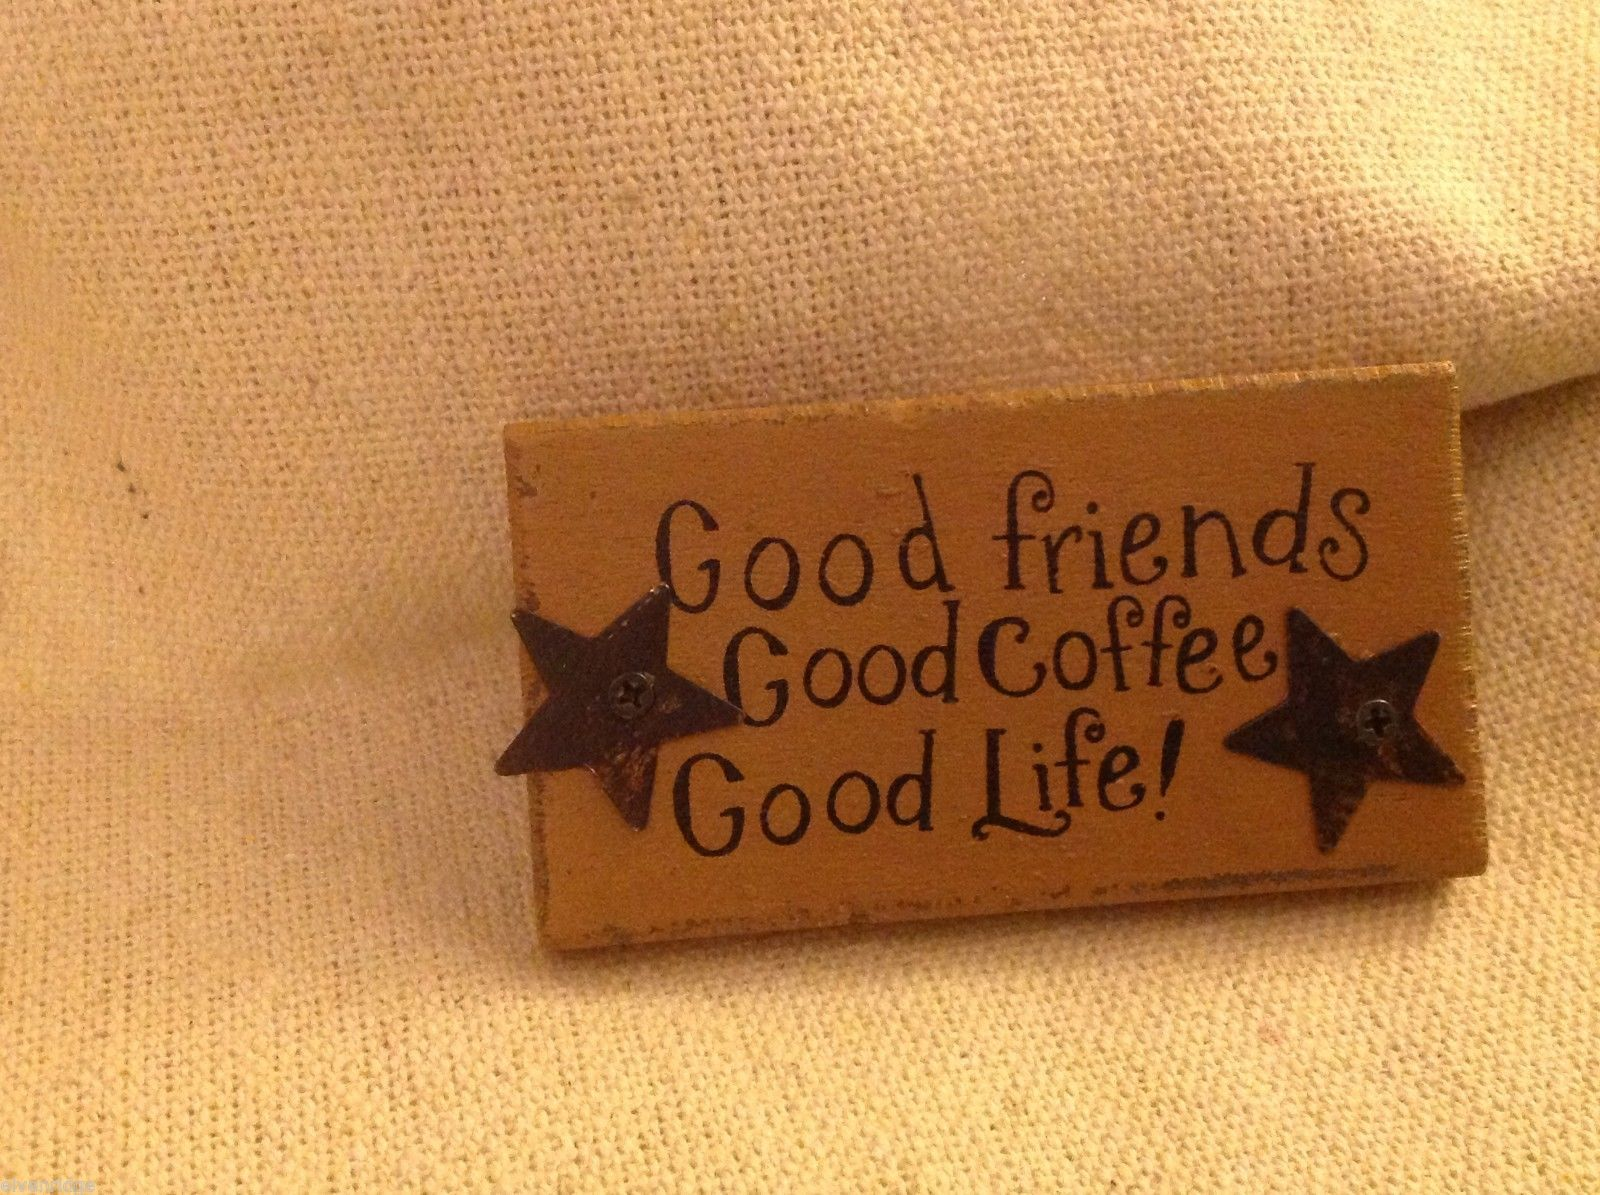 Wood wooden rustic magnet Good Friends Good Coffee Good Life !